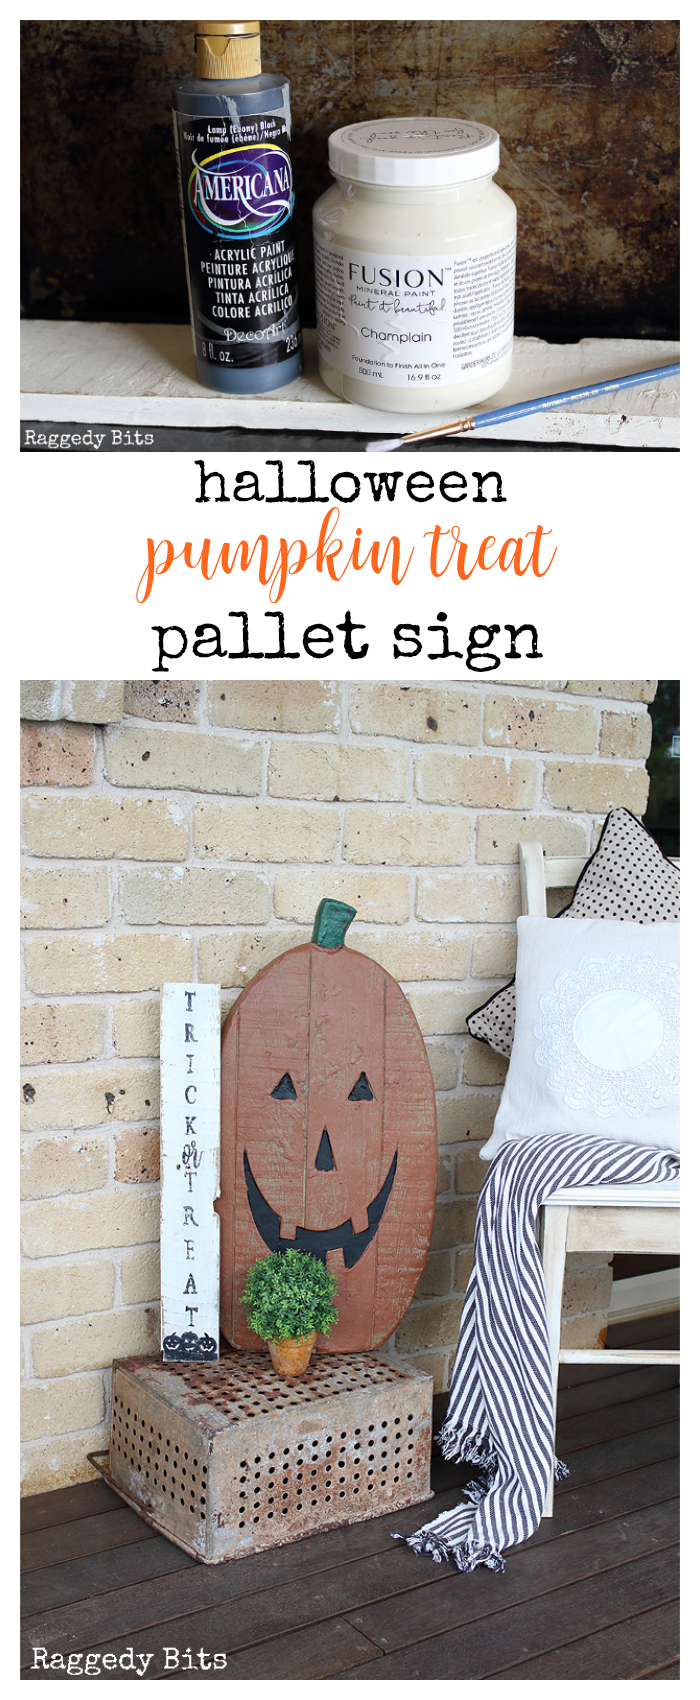 DAY 5 - Halloween Pumpkin Treat Pallet Sign | Make 5 fun projects between now and Halloween | www.raggedy-bits.com #halloween #easyproject #halloweendecorations#decoratingideas #easy #pallet #halloweentrickortreat